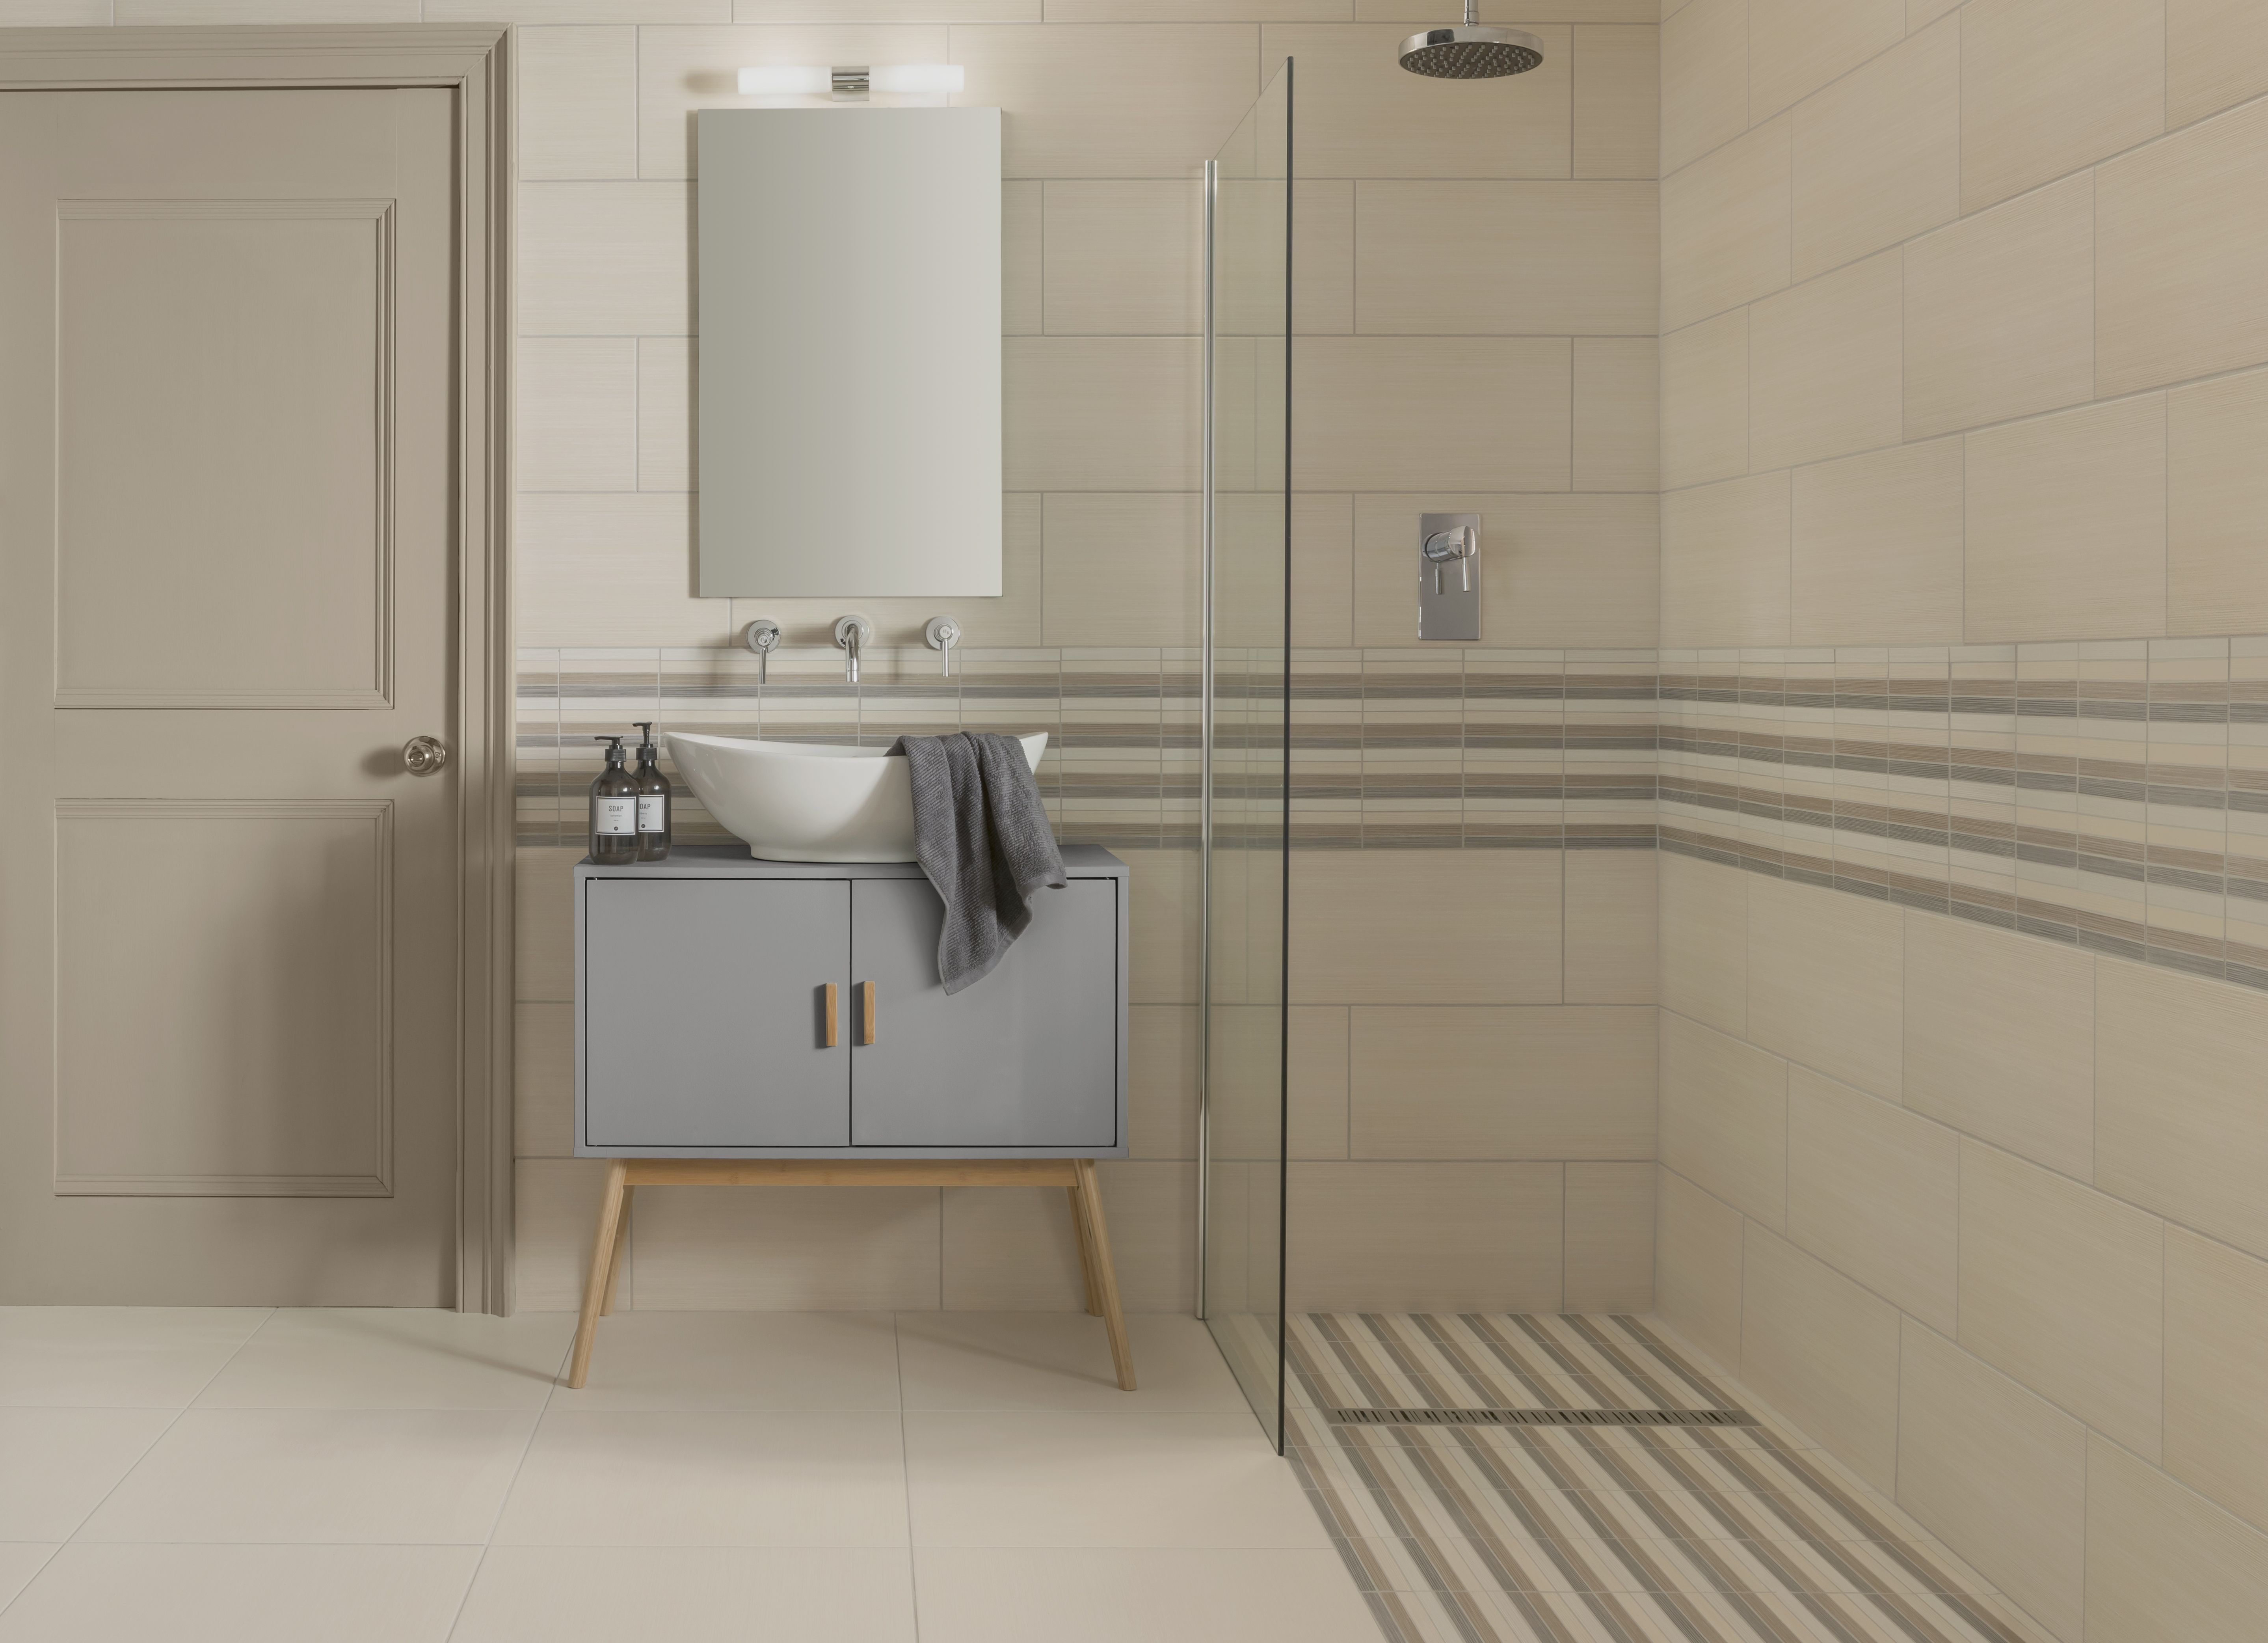 Mokara Tiles Inspired By One Of The Highest Rated Luxury Hotels